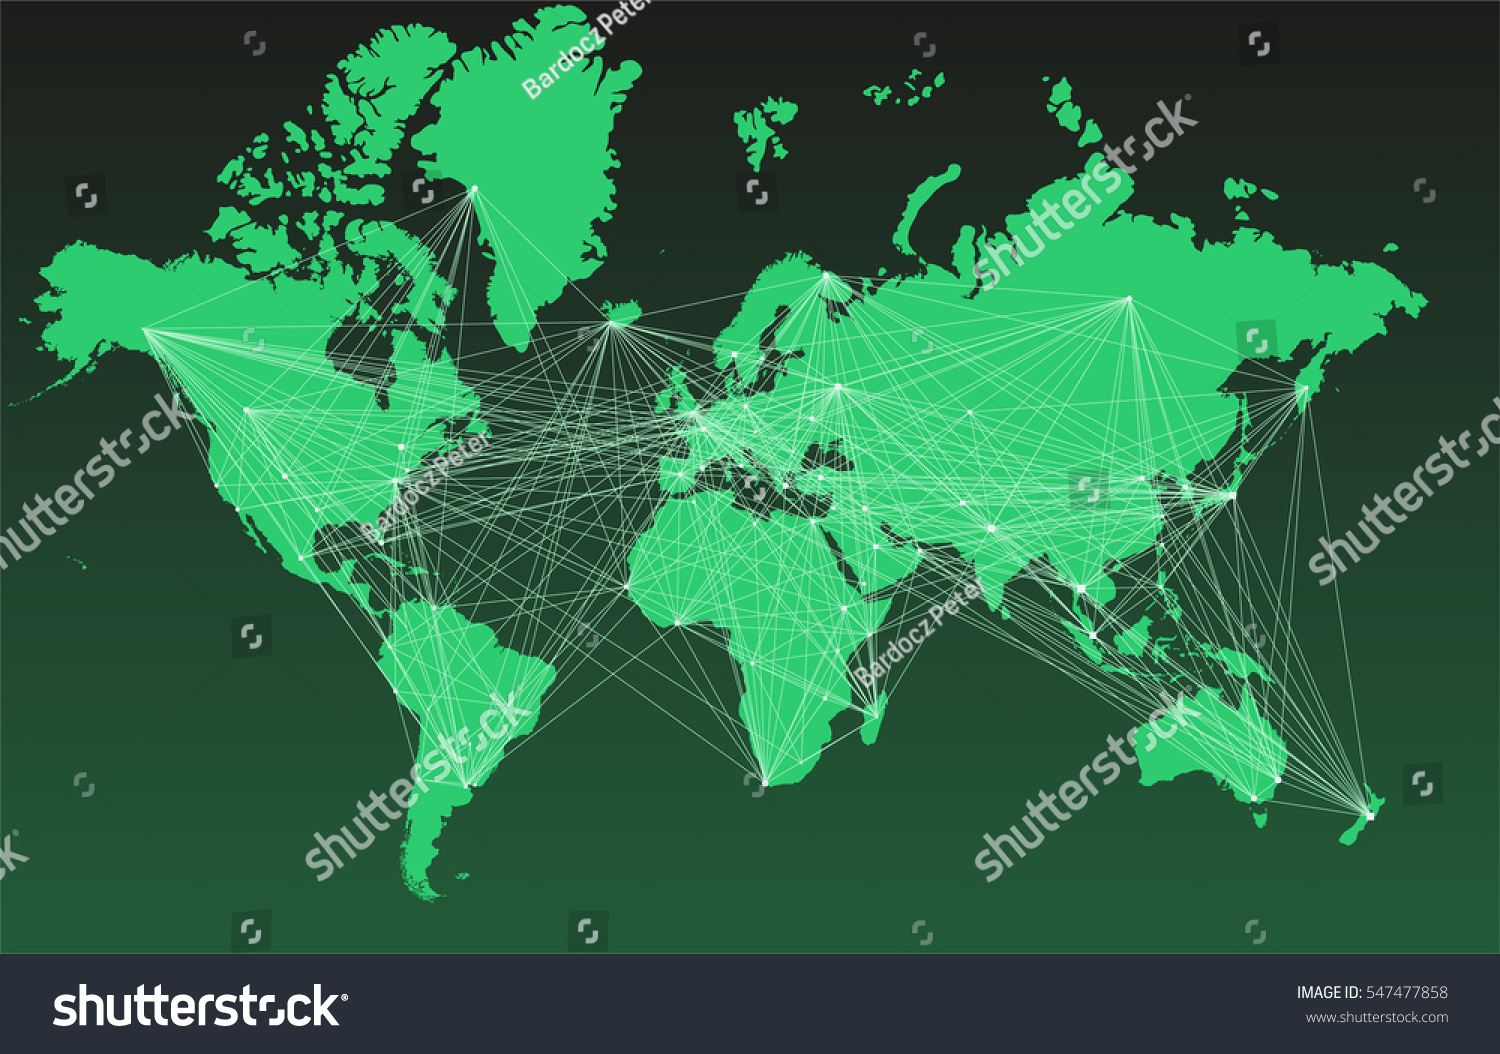 World map without cities picture ideas references world map without cities world map with big cities connected by lines gumiabroncs Choice Image